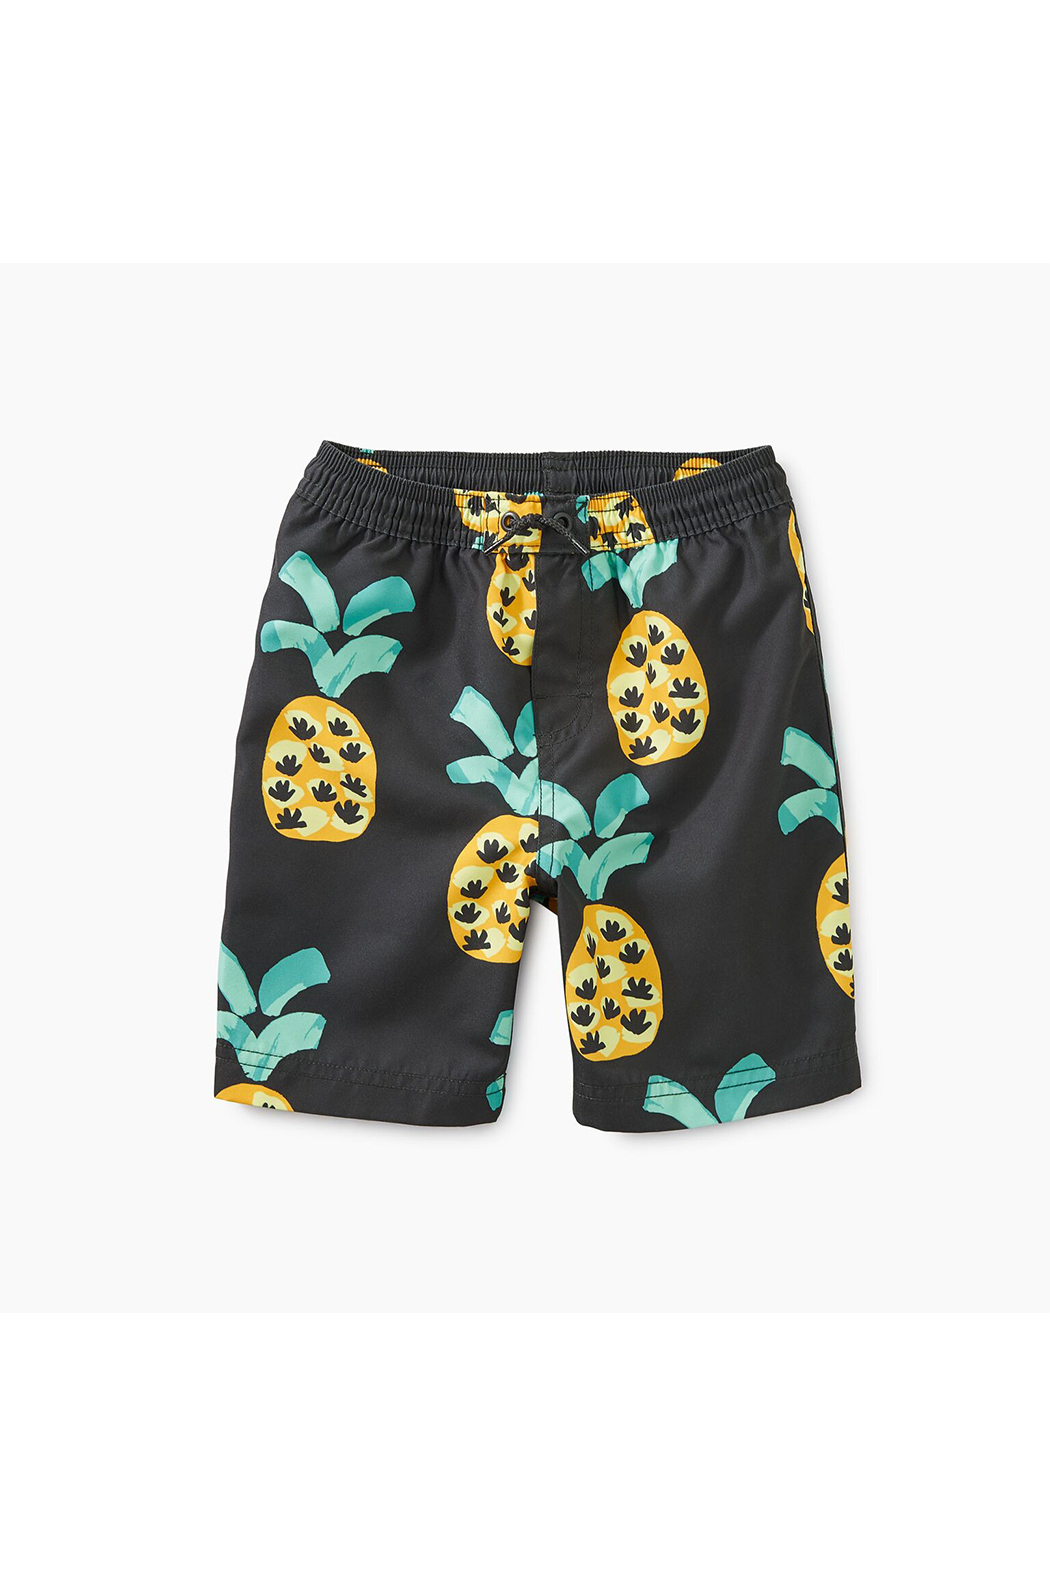 Tea Collection Printed Swim Trunks - Main Image